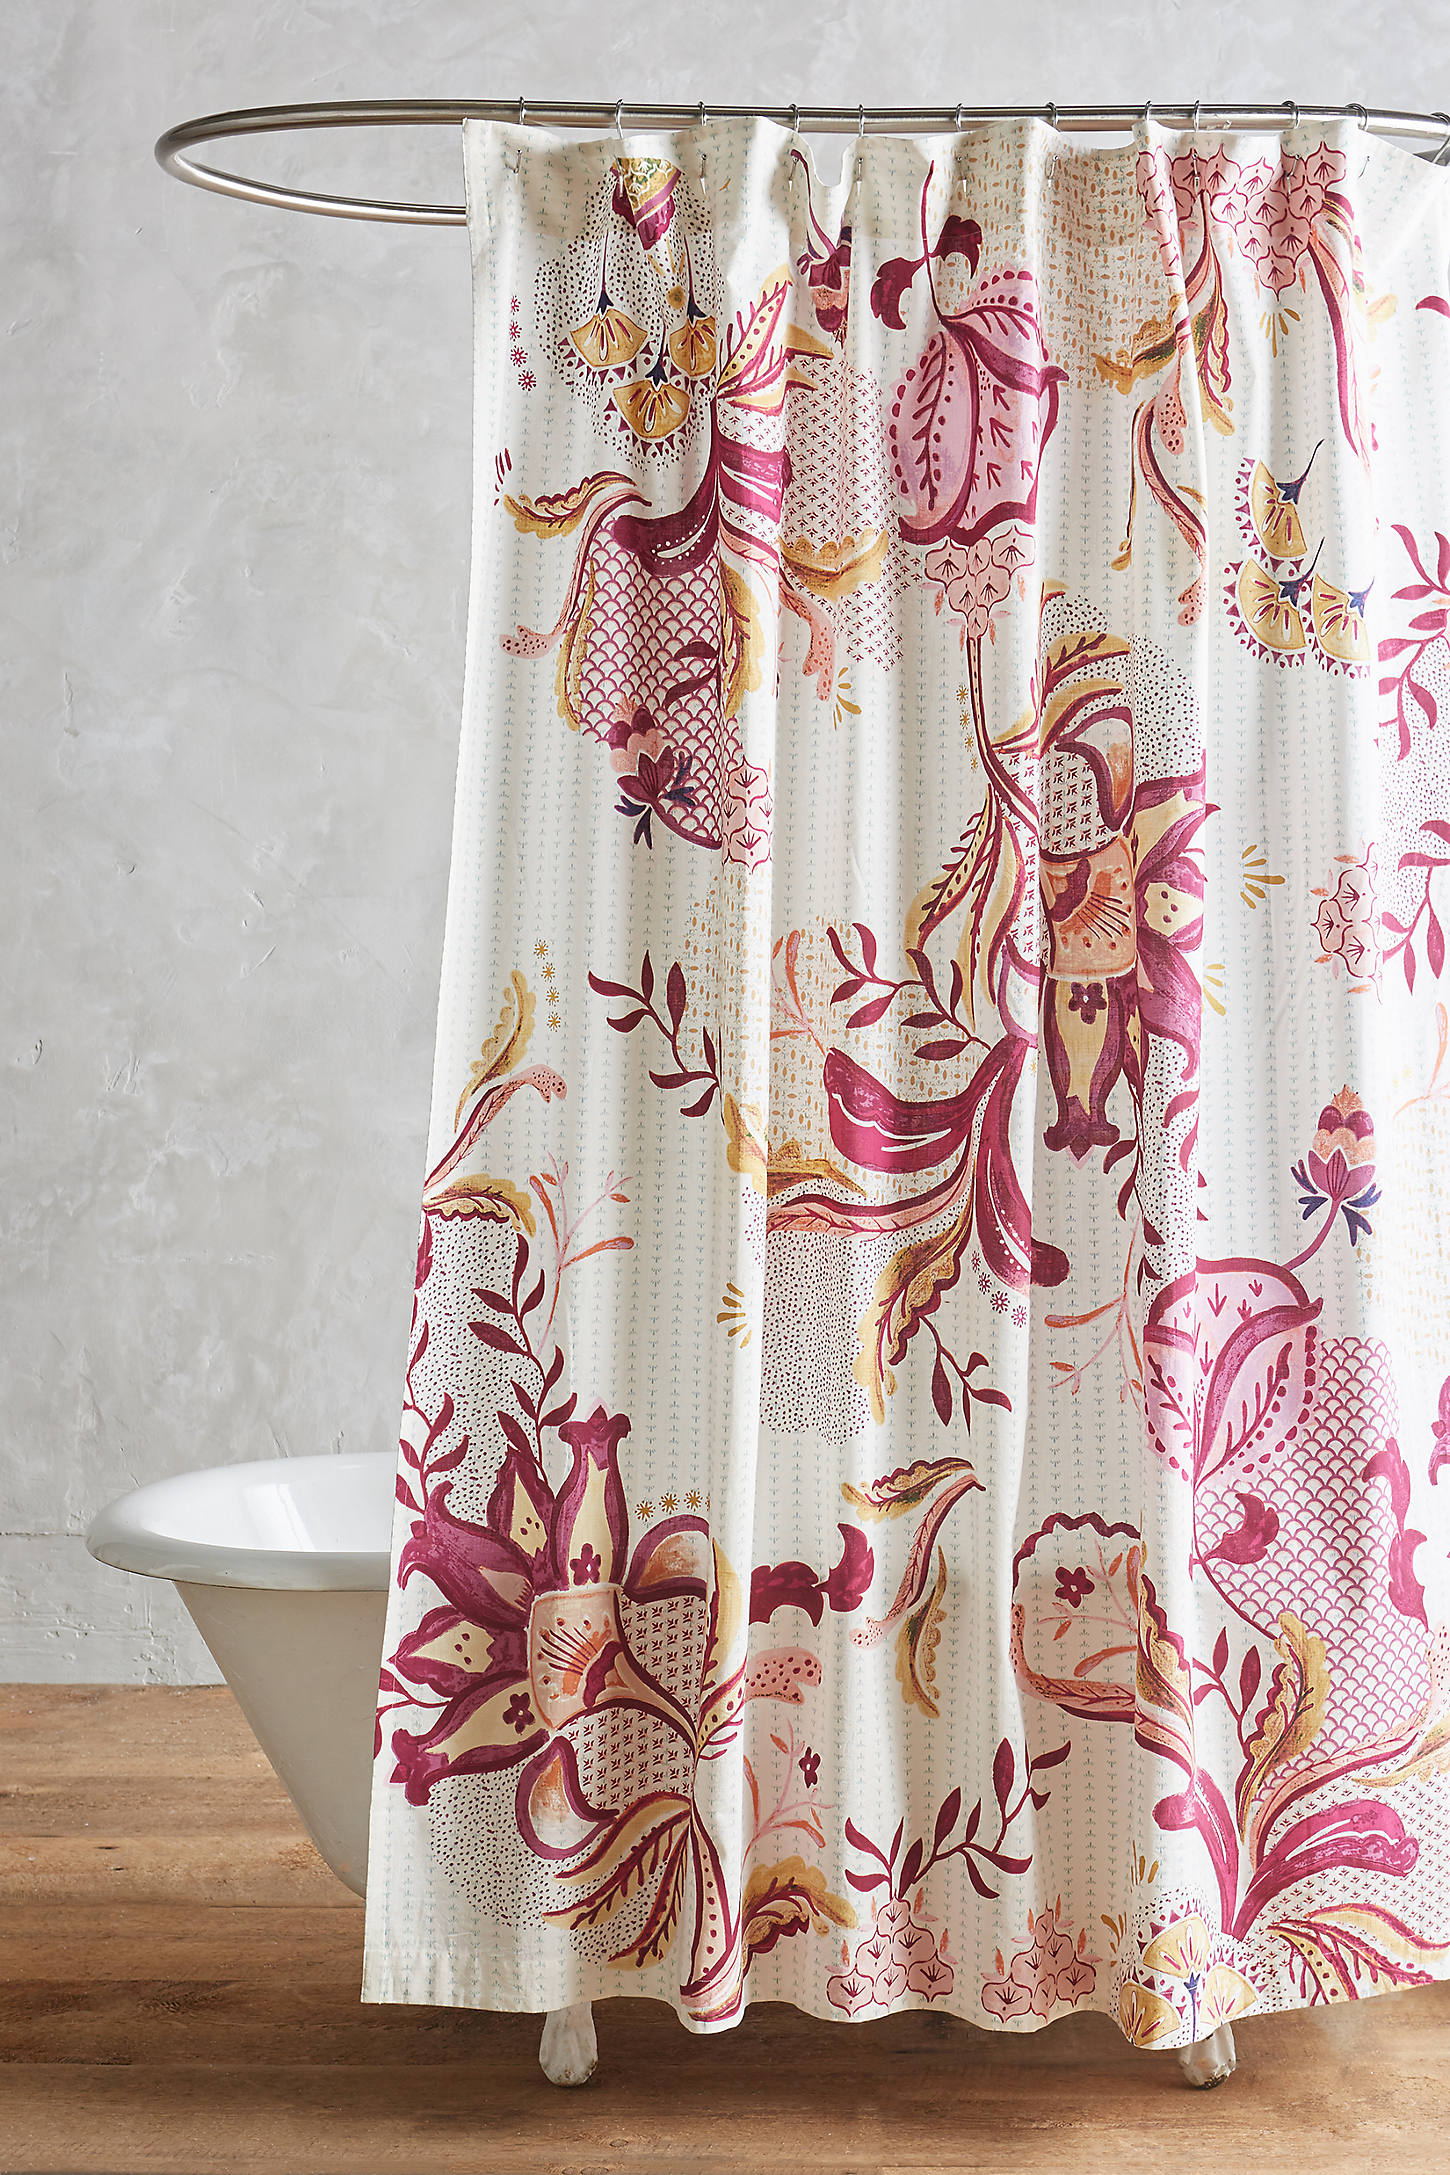 Rosaflora Shower Curtain